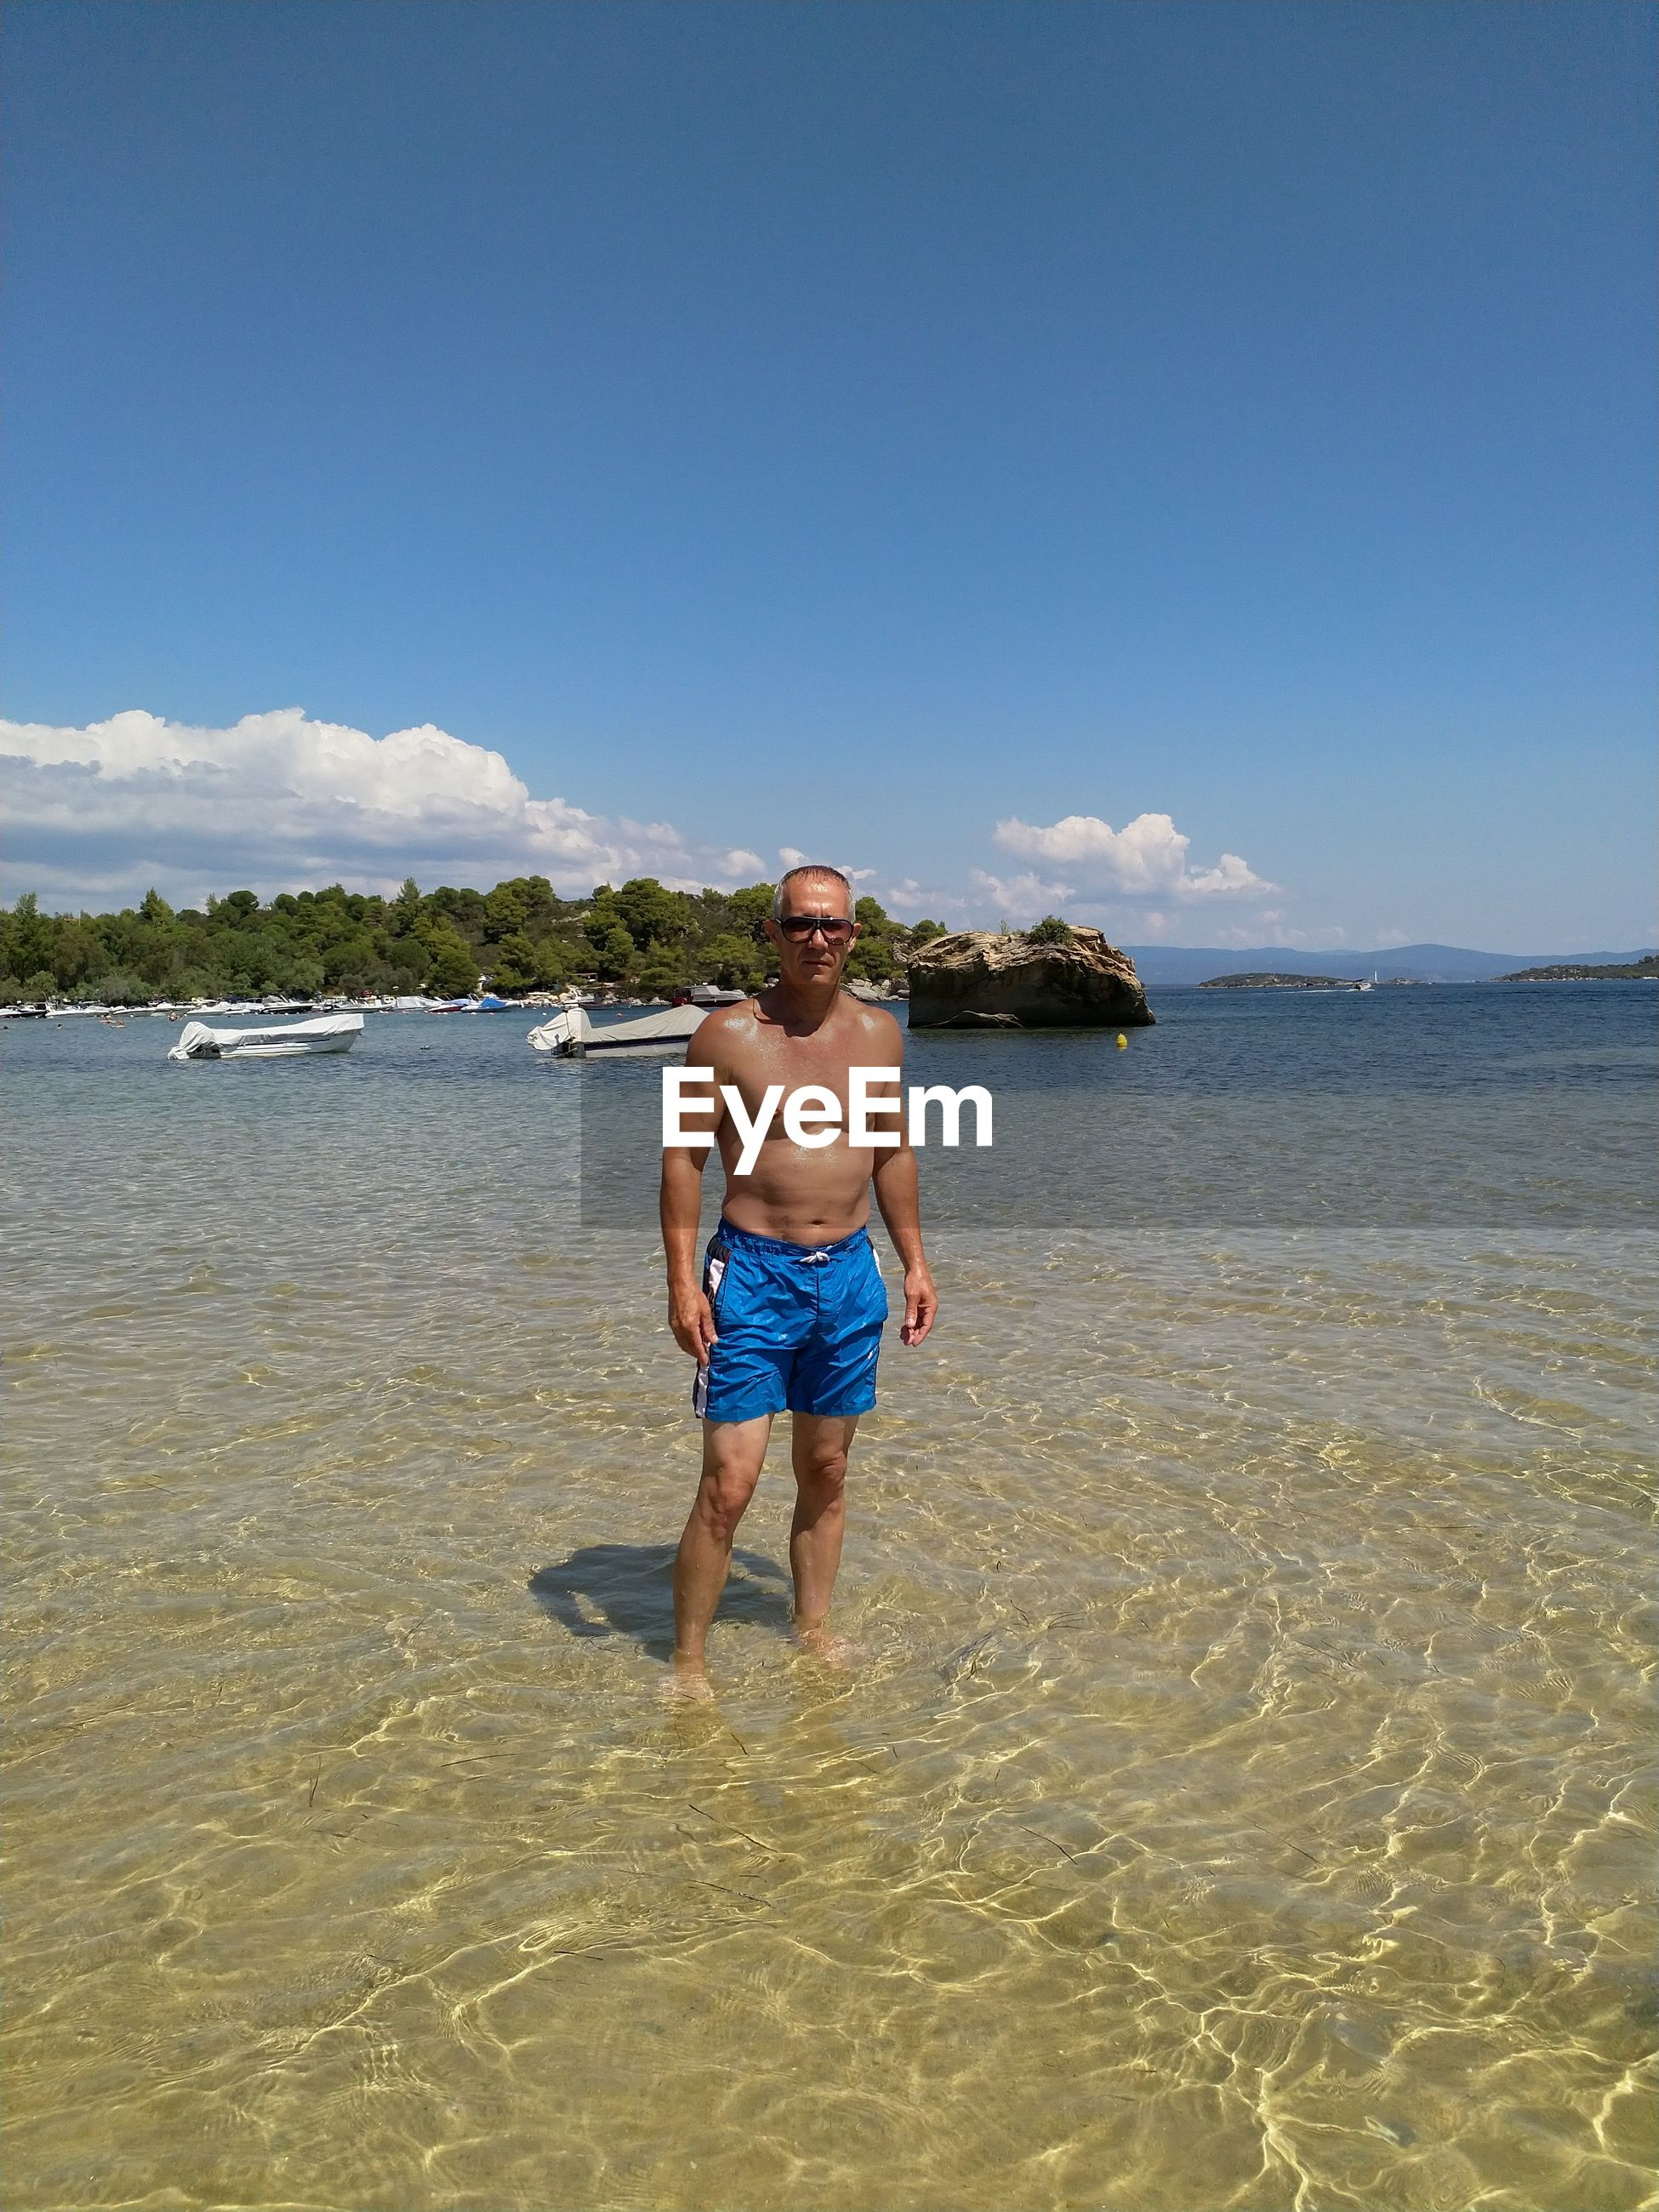 one person, beach, sky, water, shirtless, sea, leisure activity, land, real people, full length, nature, lifestyles, beauty in nature, day, vacations, men, trip, holiday, shorts, outdoors, mature men